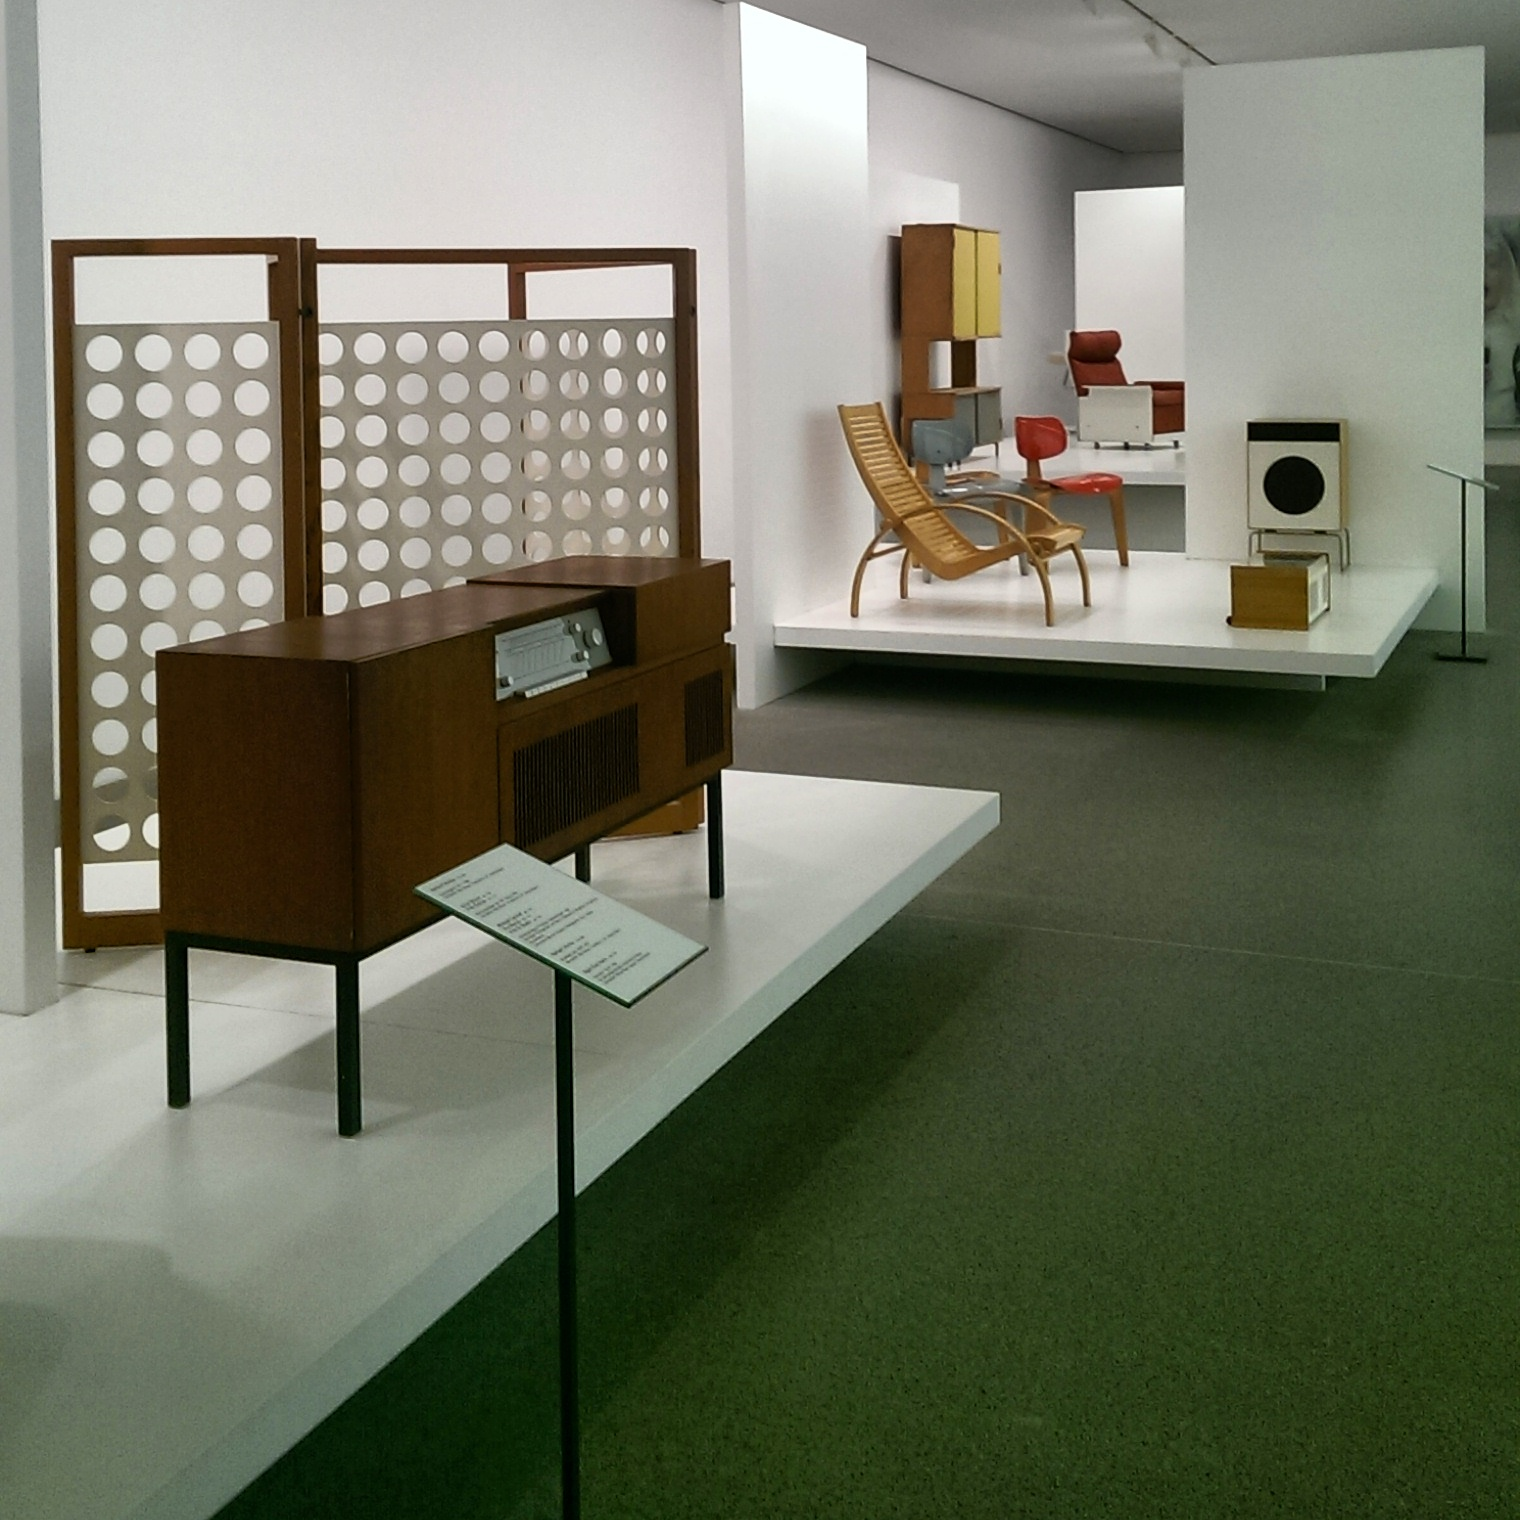 Mid Twentieth Furniture Collection At The Pinakothek Der Moderne